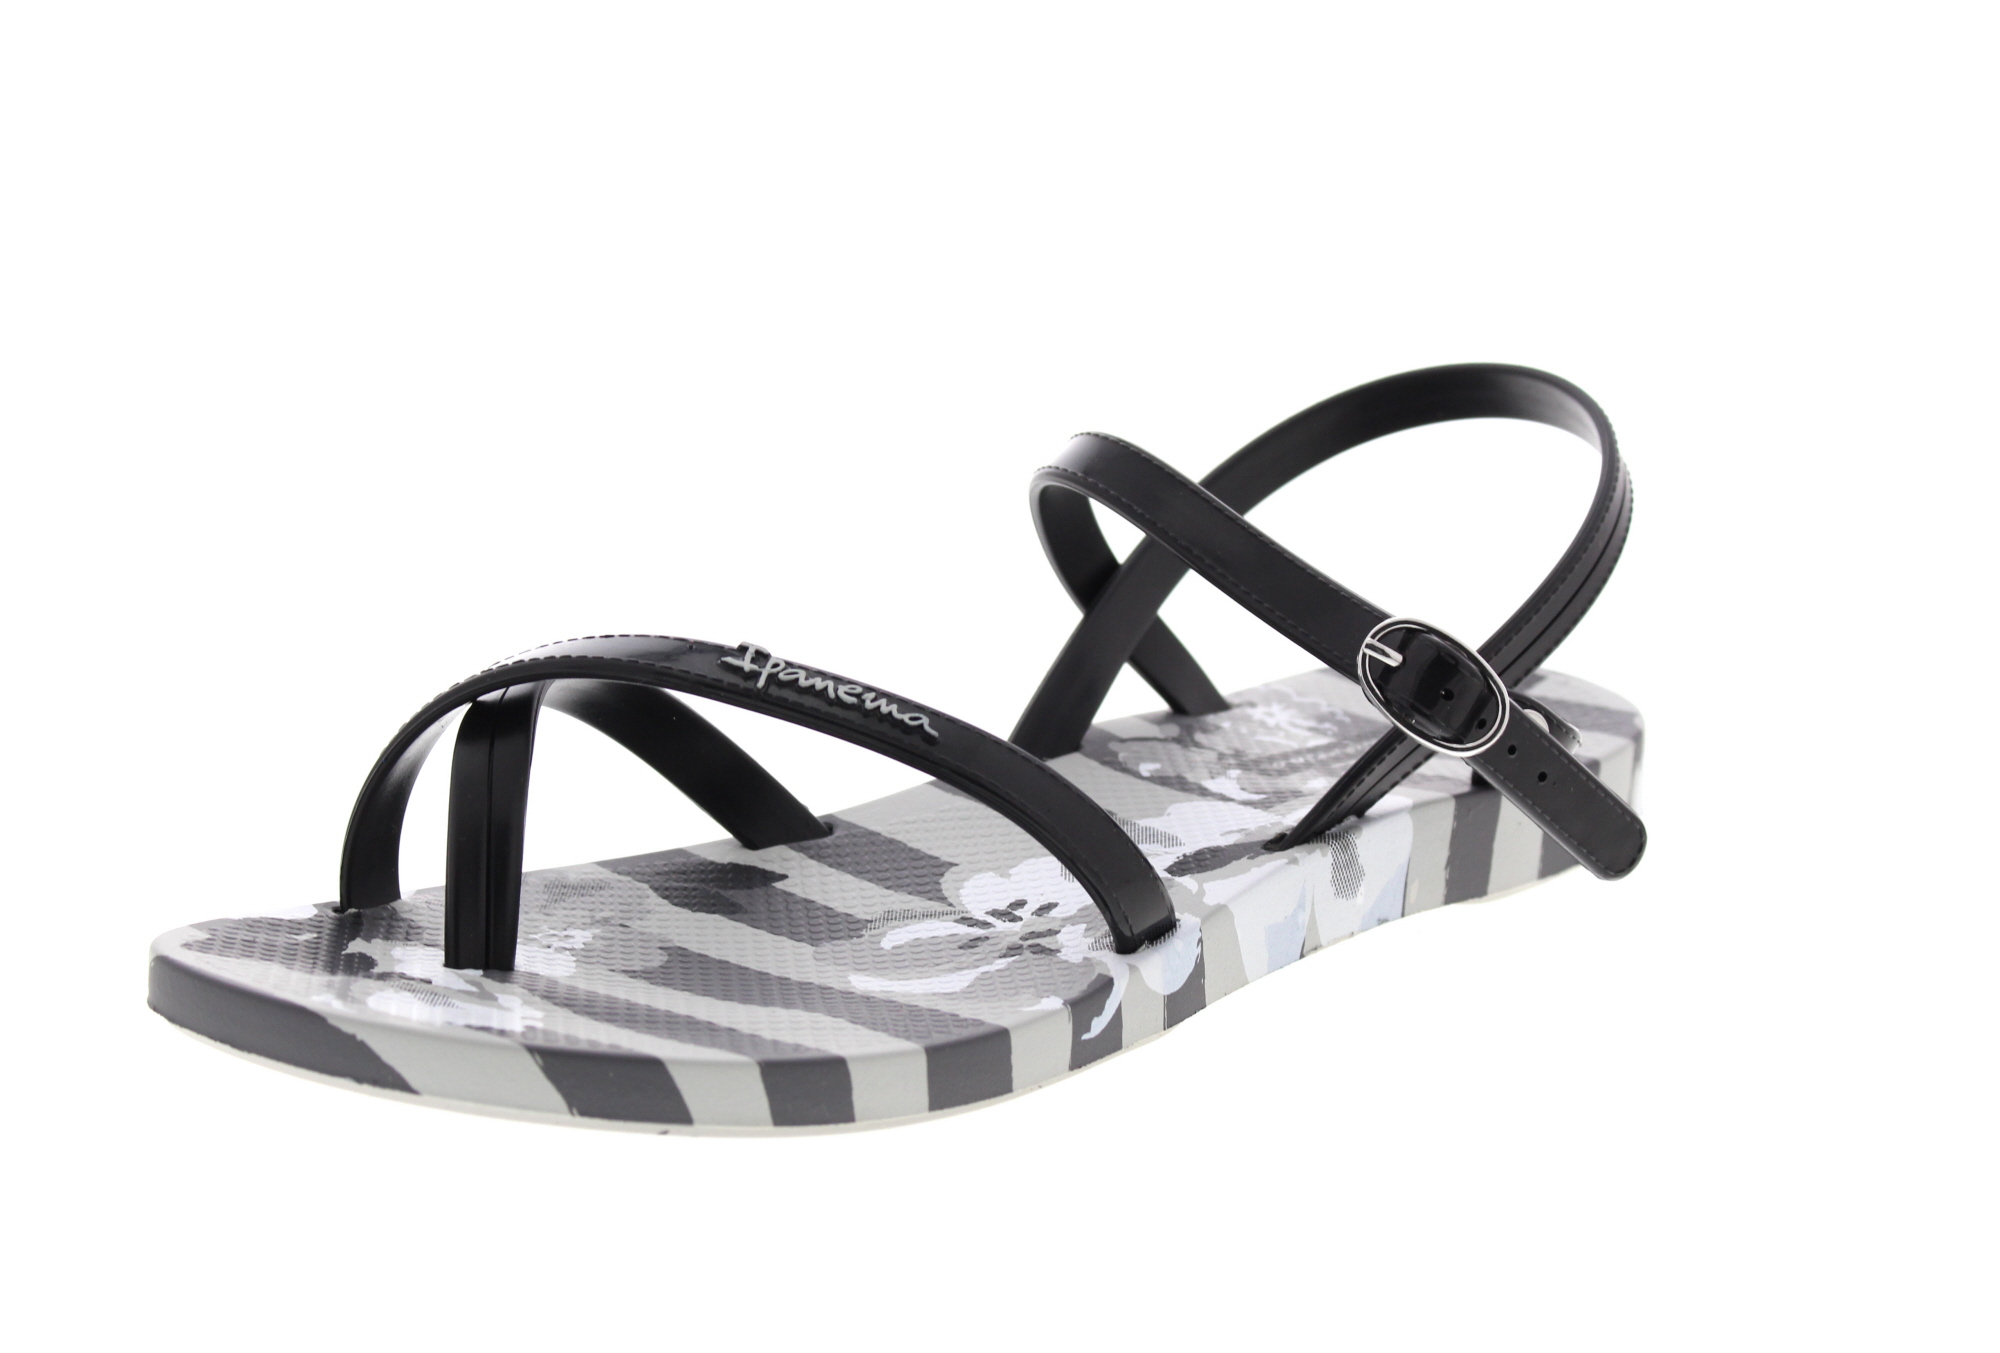 IPANEMA reduziert FASHION SANDAL V 82291 - grey black0-6555